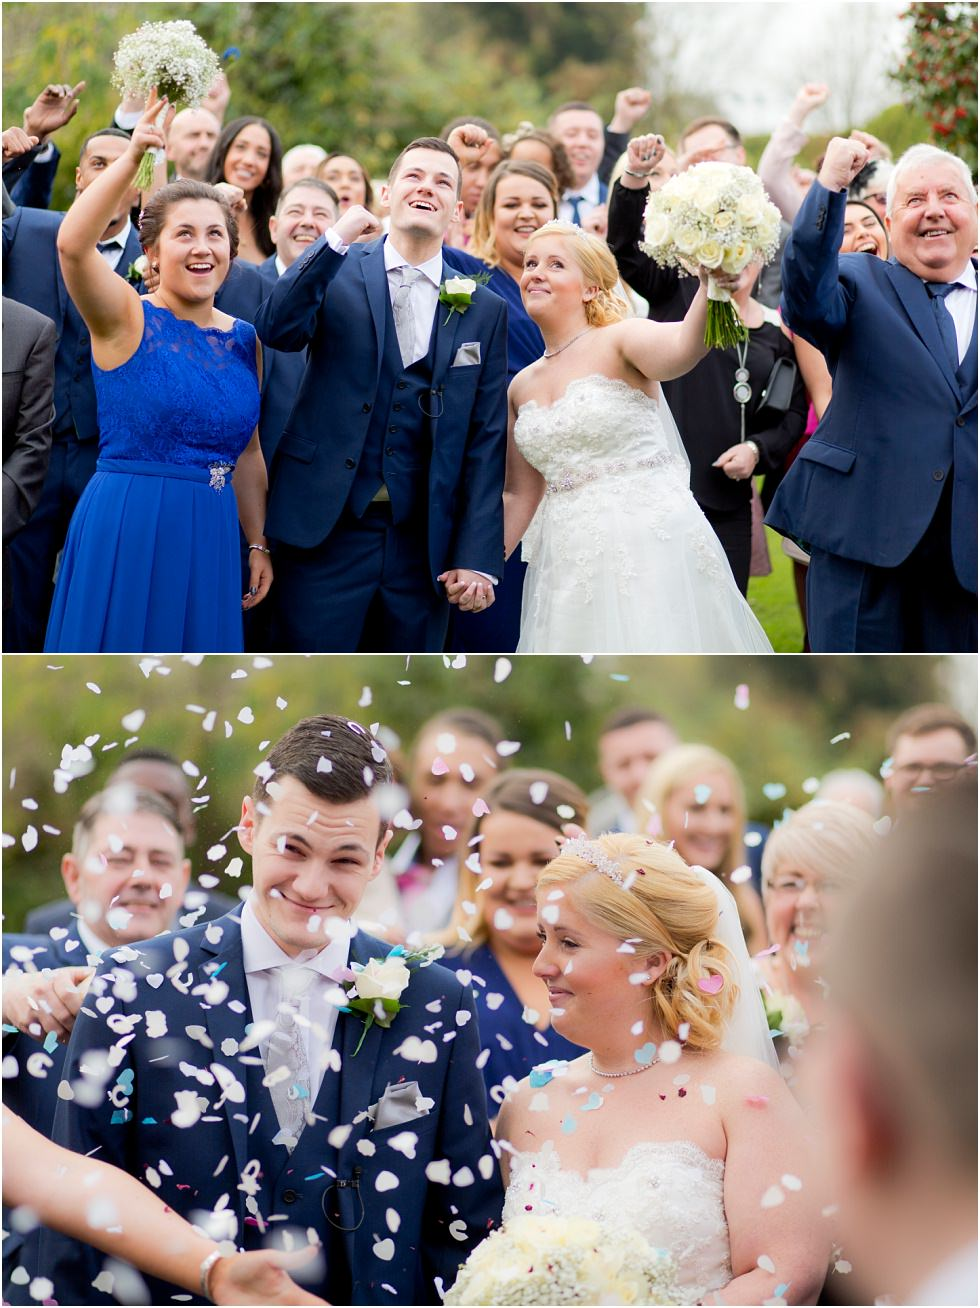 Wedding_at_The_Carriage_Hall_Plumtree_Nottingham_By_Nottingham_Wedding_Photographers_Matt_Selby_Photography_13